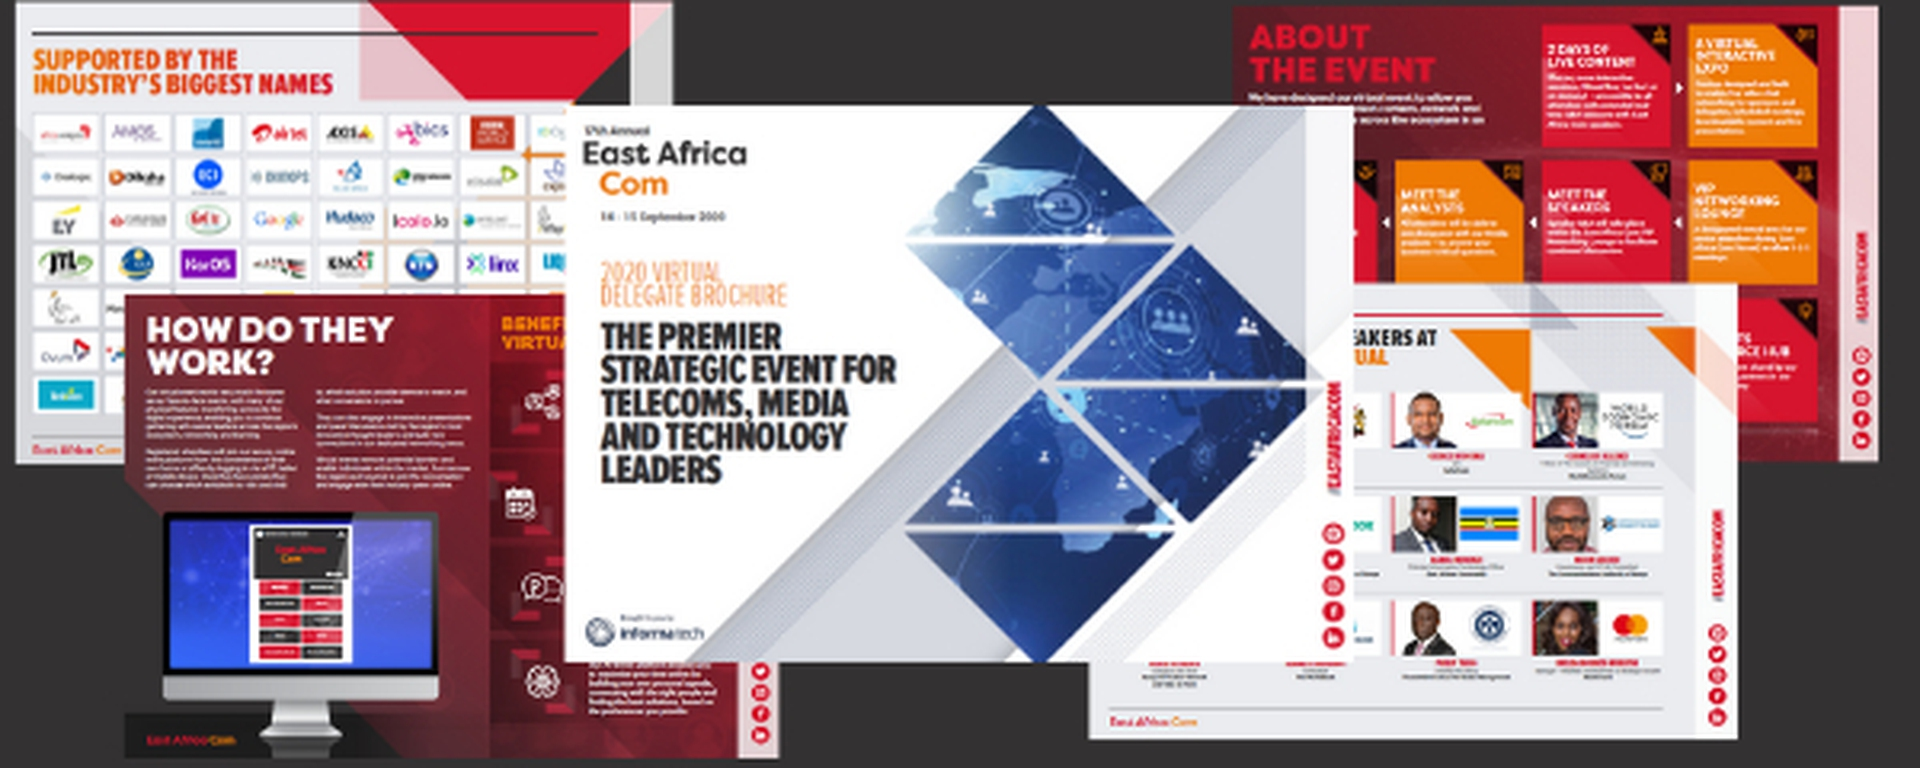 Informa Tech - East Africa Com 2020 Movemeback African event cover image